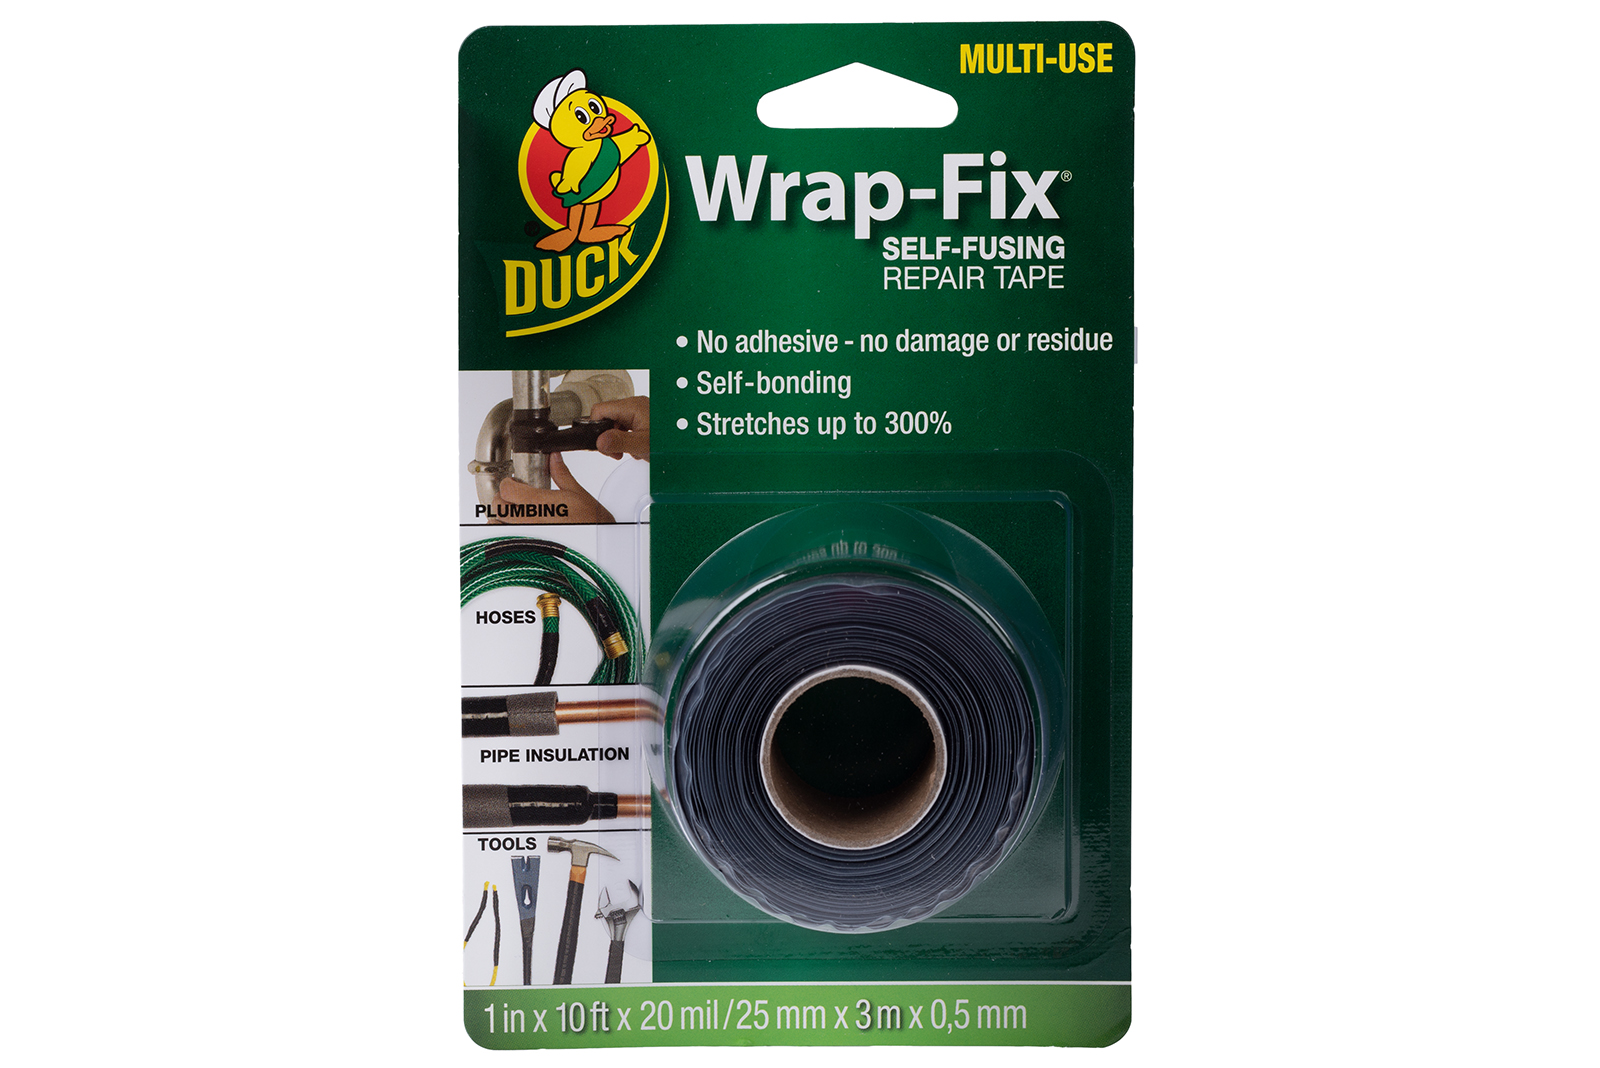 25 rolls of Duck Wrap-Fix to win!